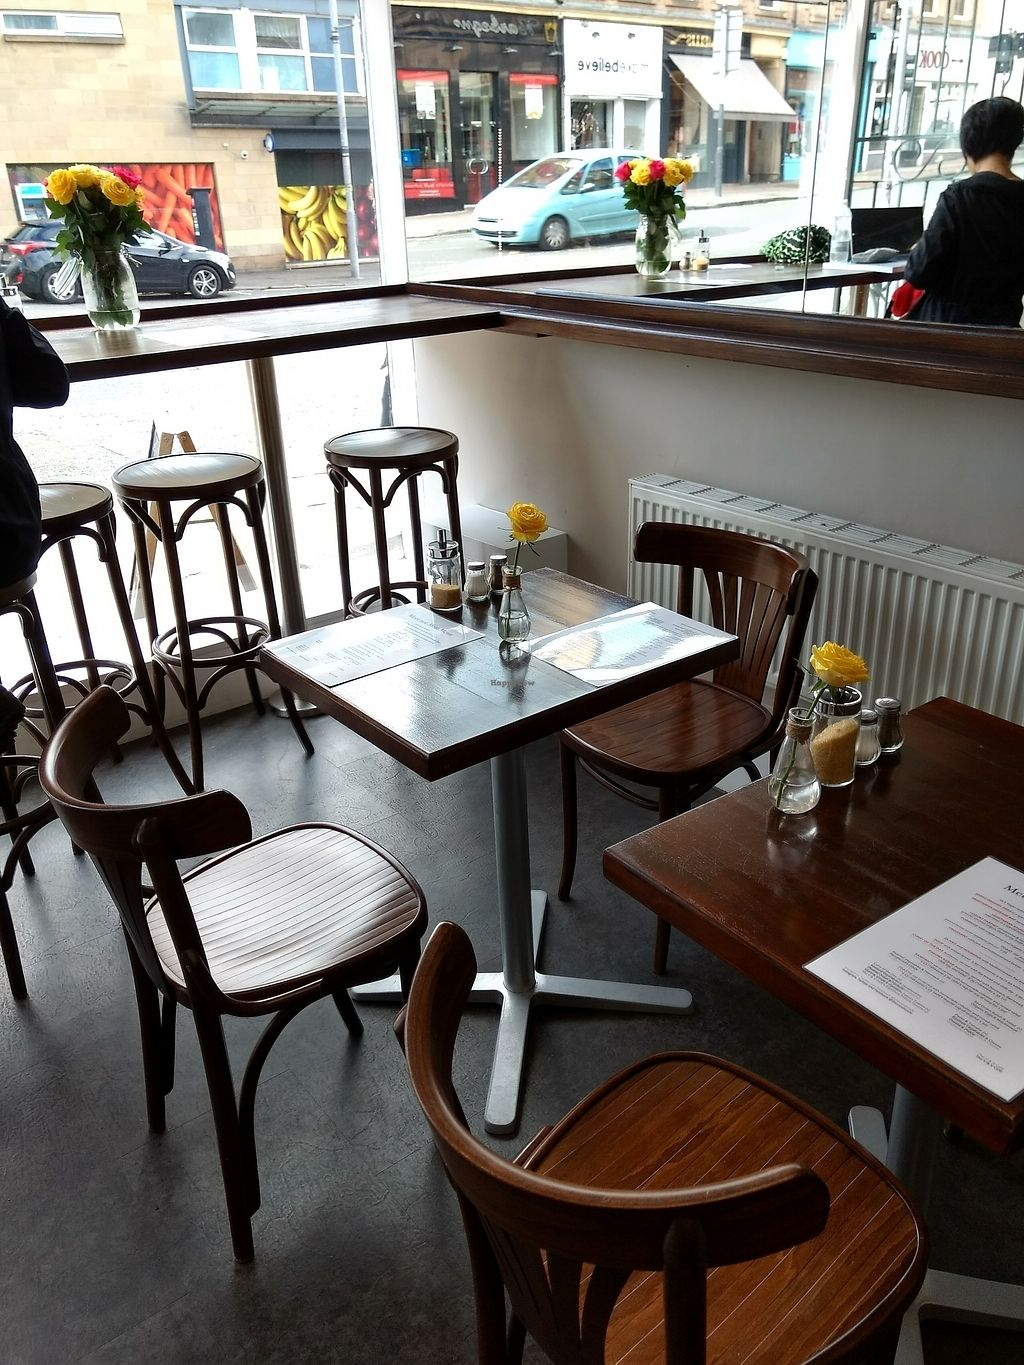 """Photo of The V & V Cafe  by <a href=""""/members/profile/craigmc"""">craigmc</a> <br/>seating <br/> August 5, 2017  - <a href='/contact/abuse/image/87908/289004'>Report</a>"""